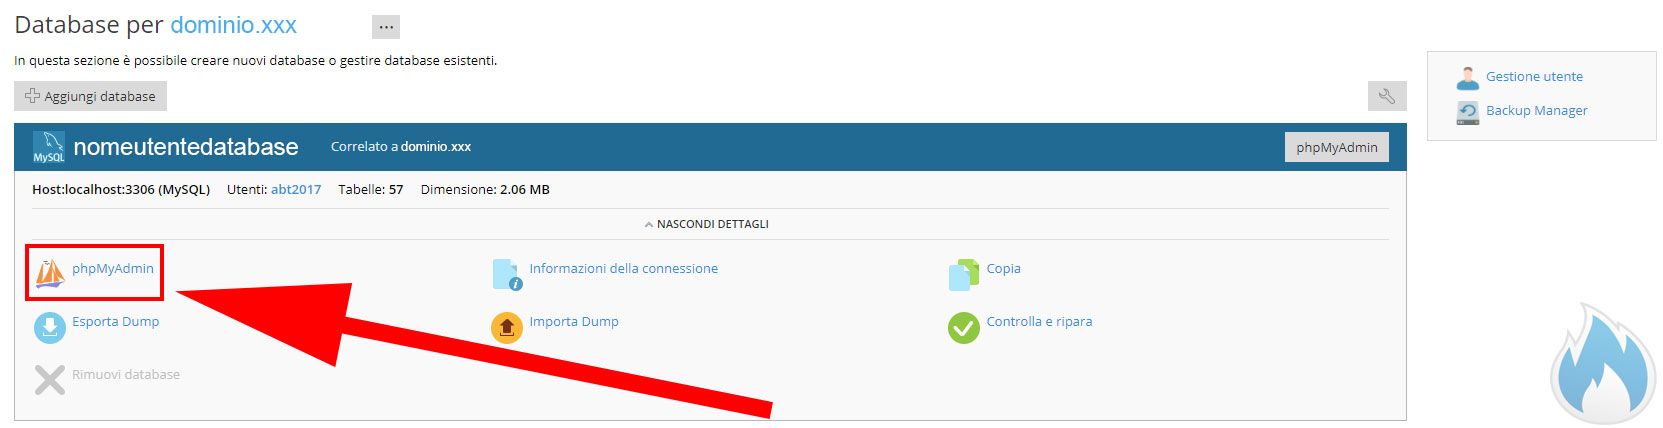 Come cambiare password di accesso su WordPress 2